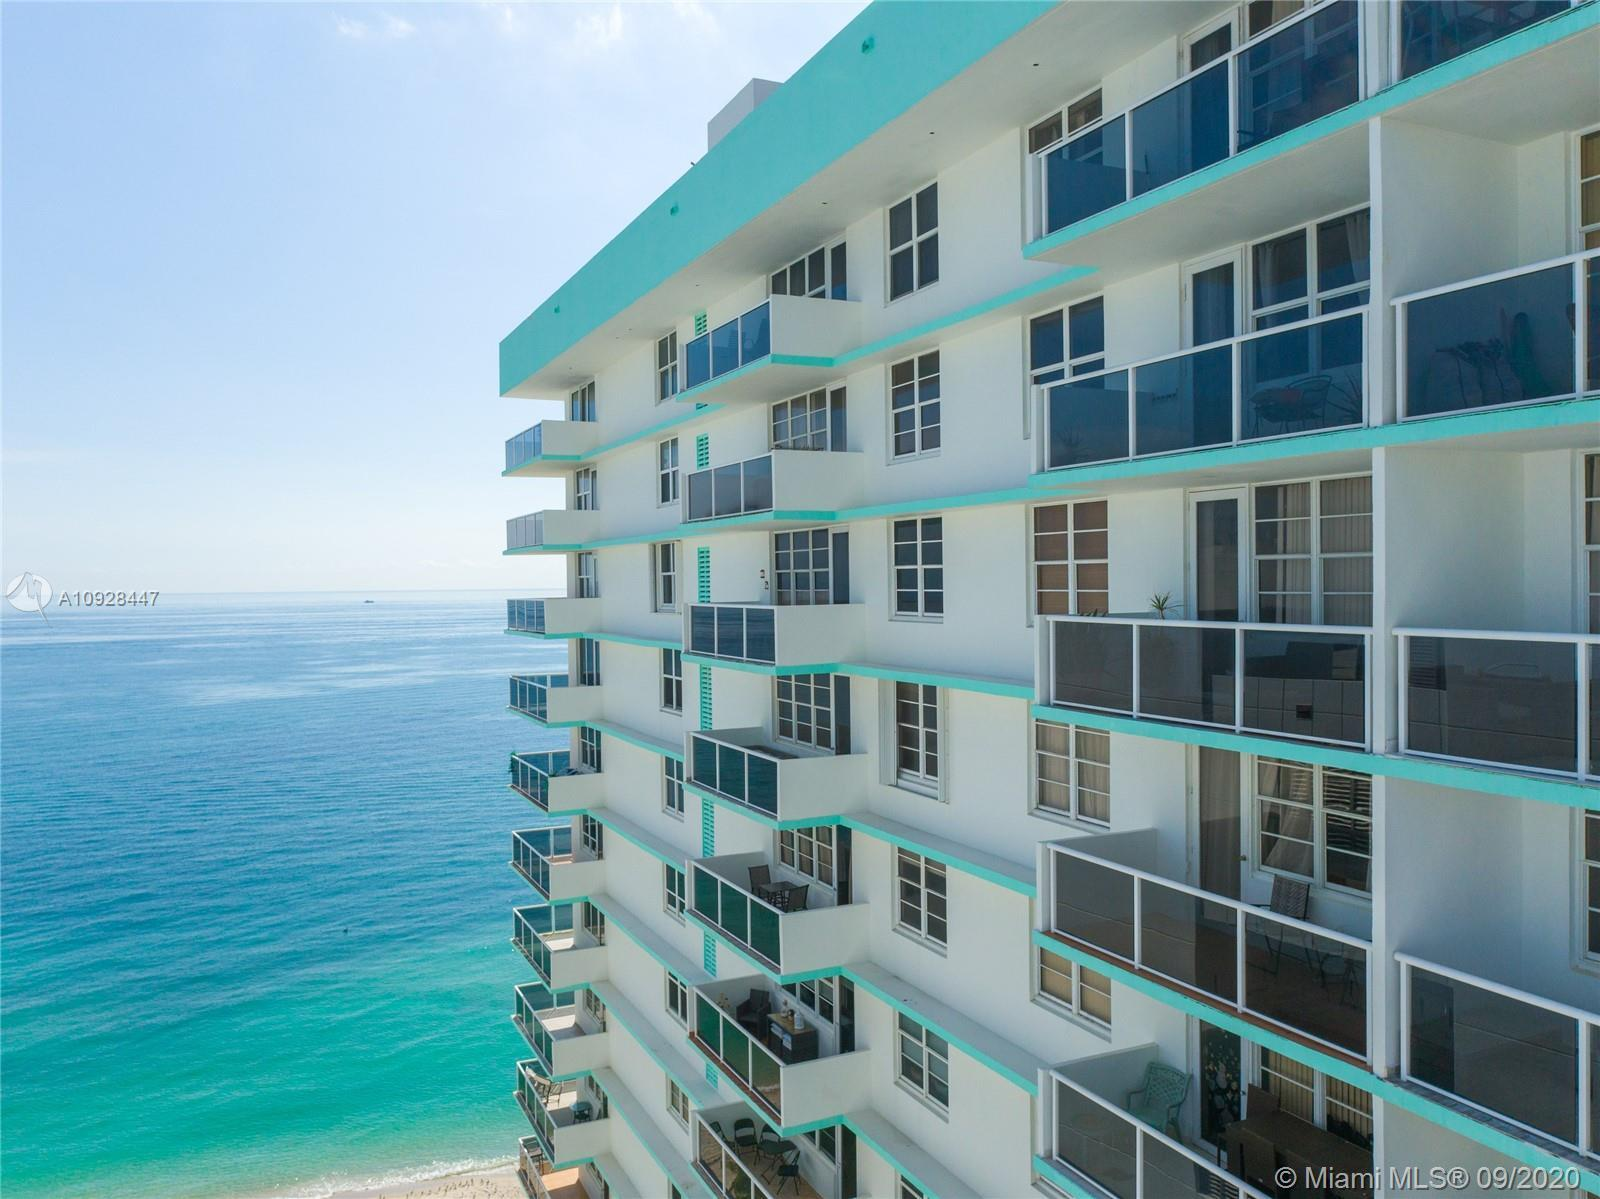 OCEANFRONT BUILDING WITH MANY AMENITIES AND DIRECT BEACH ACCESS. THIS IS A GREAT RENOVATED 2 BED 2 B